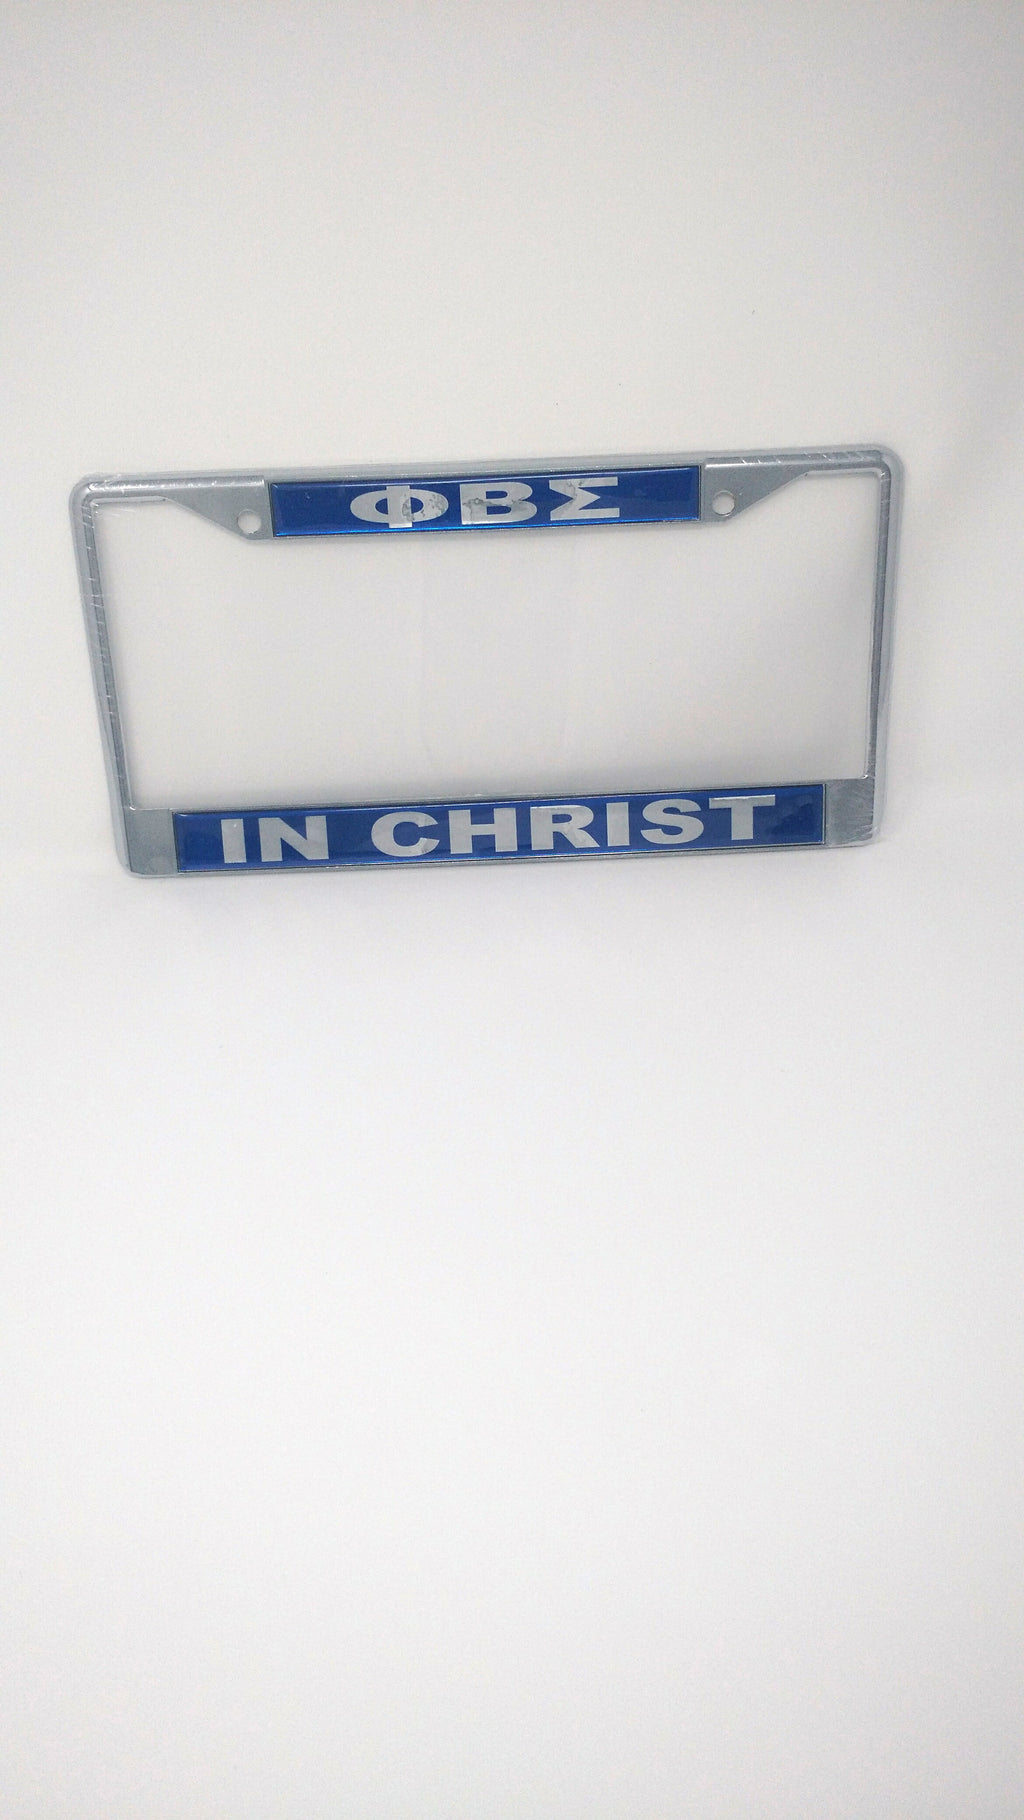 Phi Beta Sigma In Christ License Plate Frame